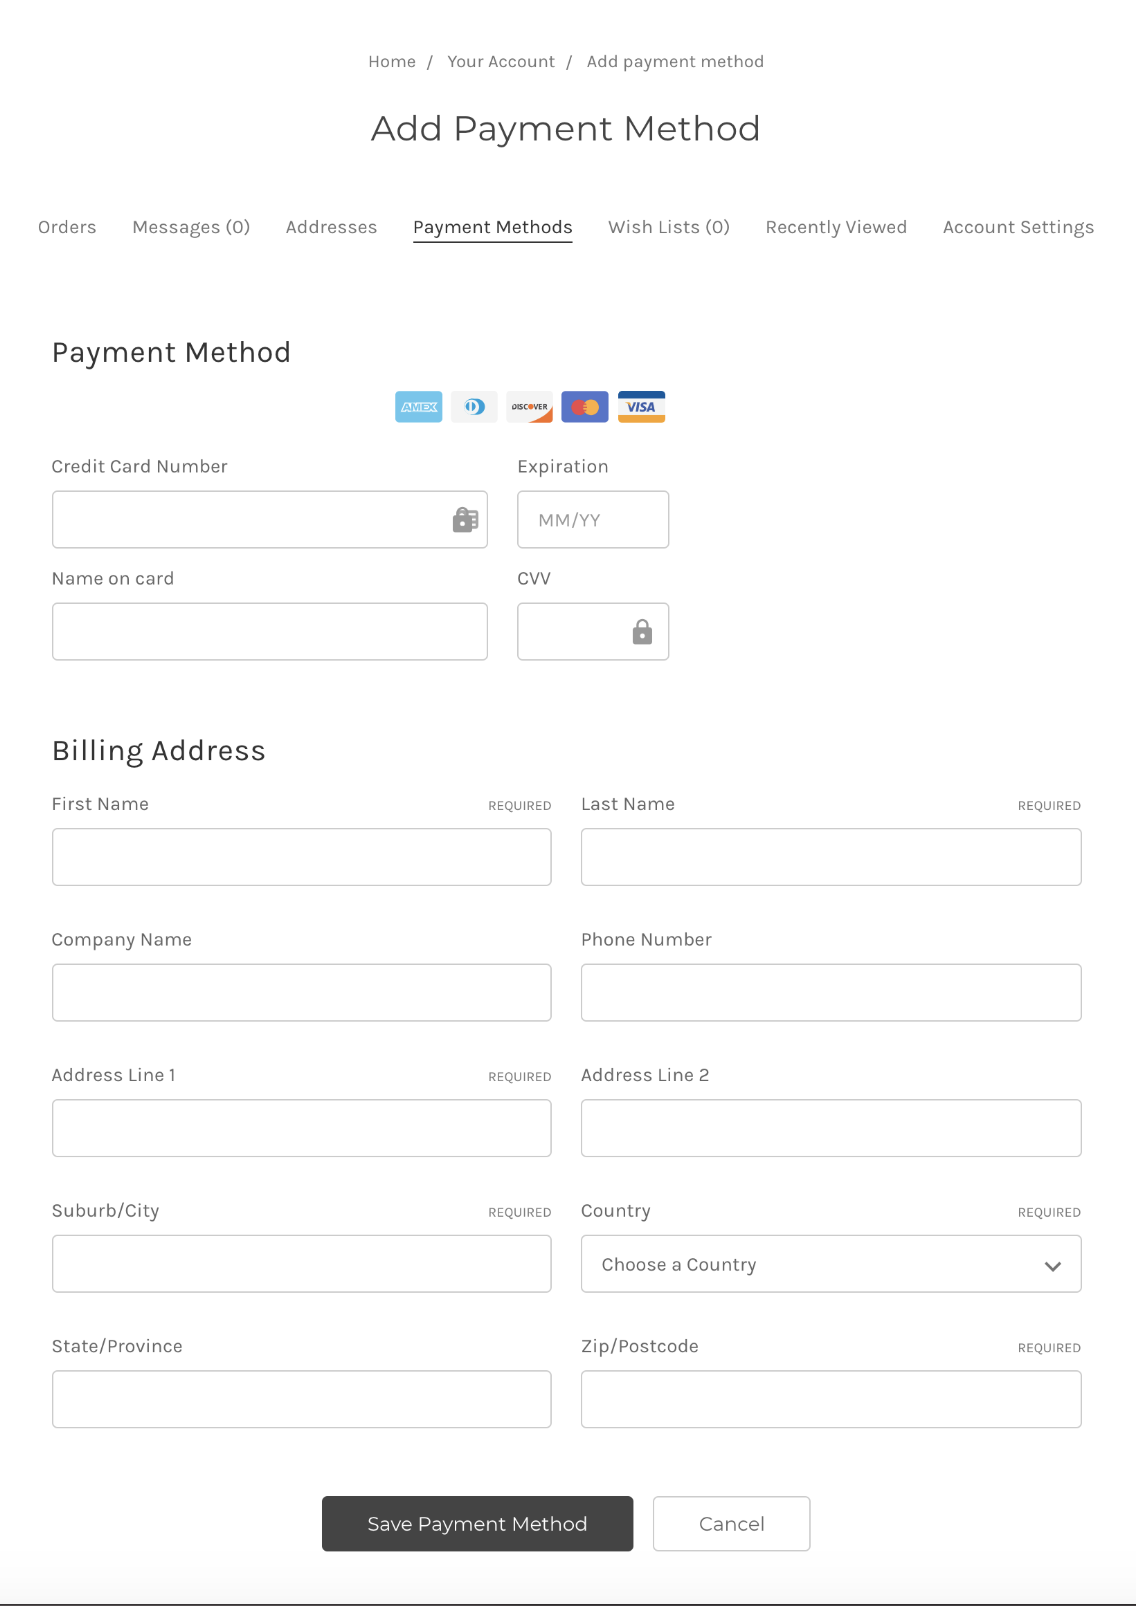 #### Example of the addition of the Add Payment Method